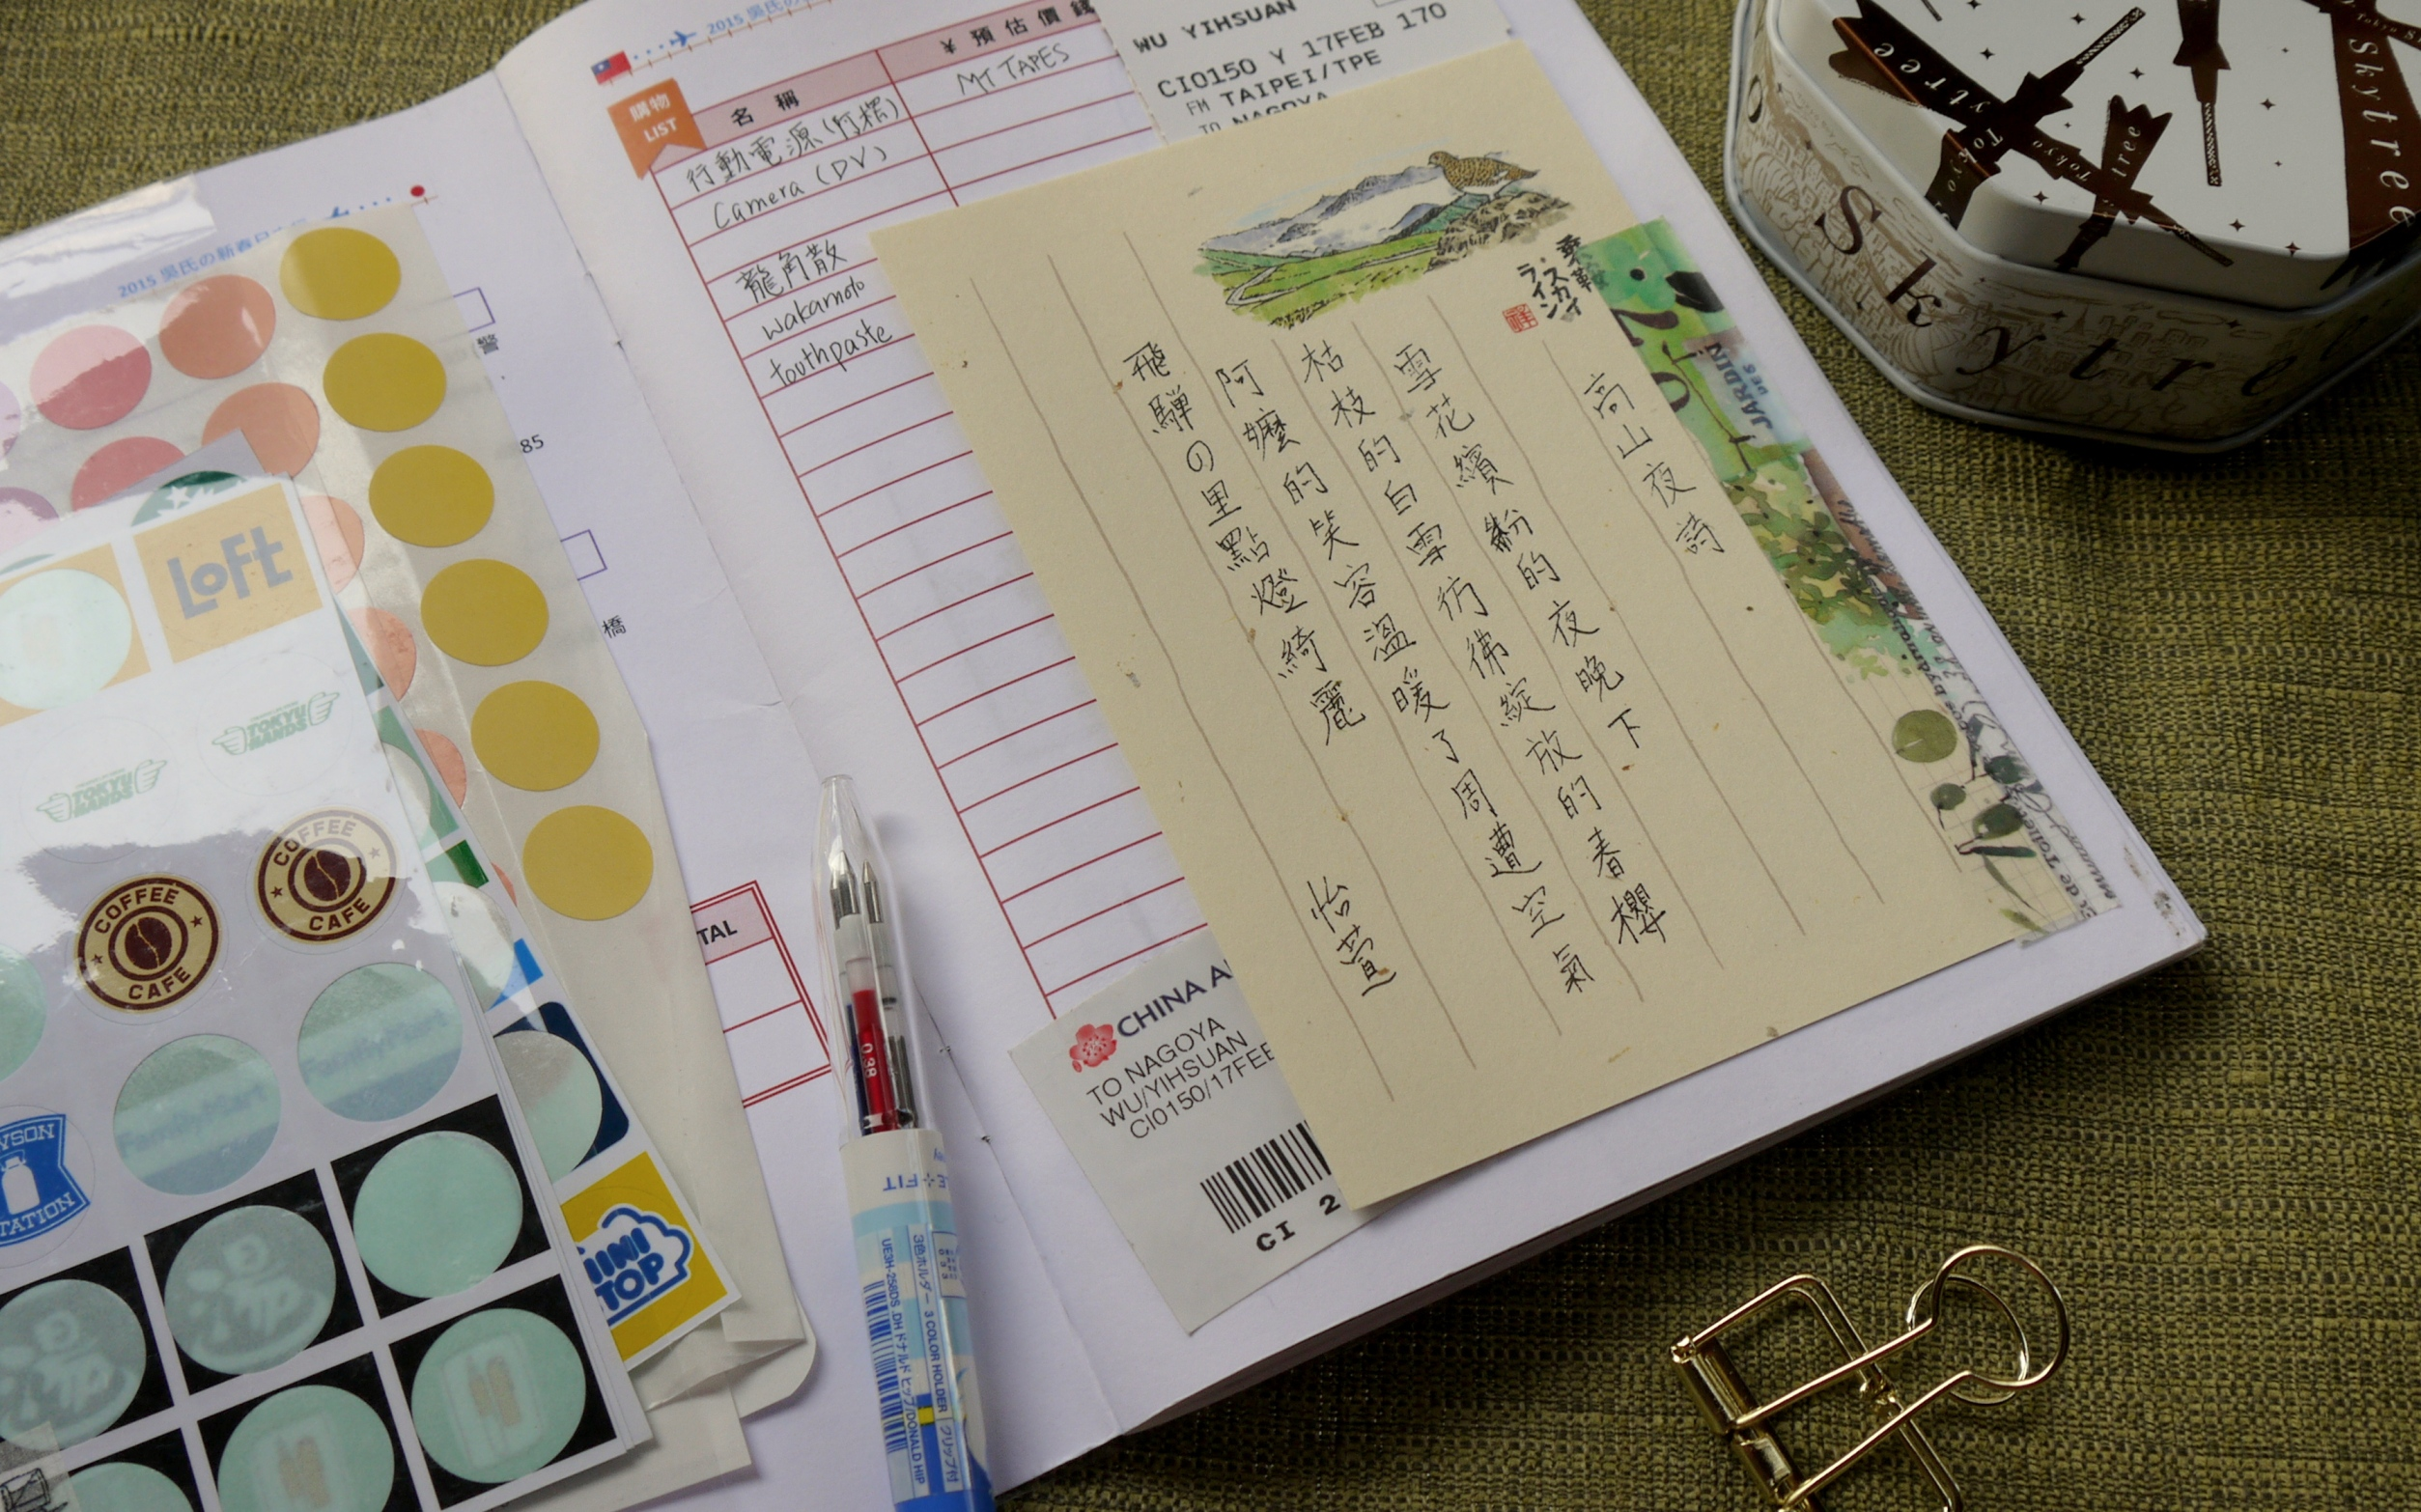 How to scrapbook journal - In This Travel Scrapbook I Will Also Write Down Short Diary Entries Doodle In Blank Places And Stick In Scraps From Interesting Brochures And Tickets To